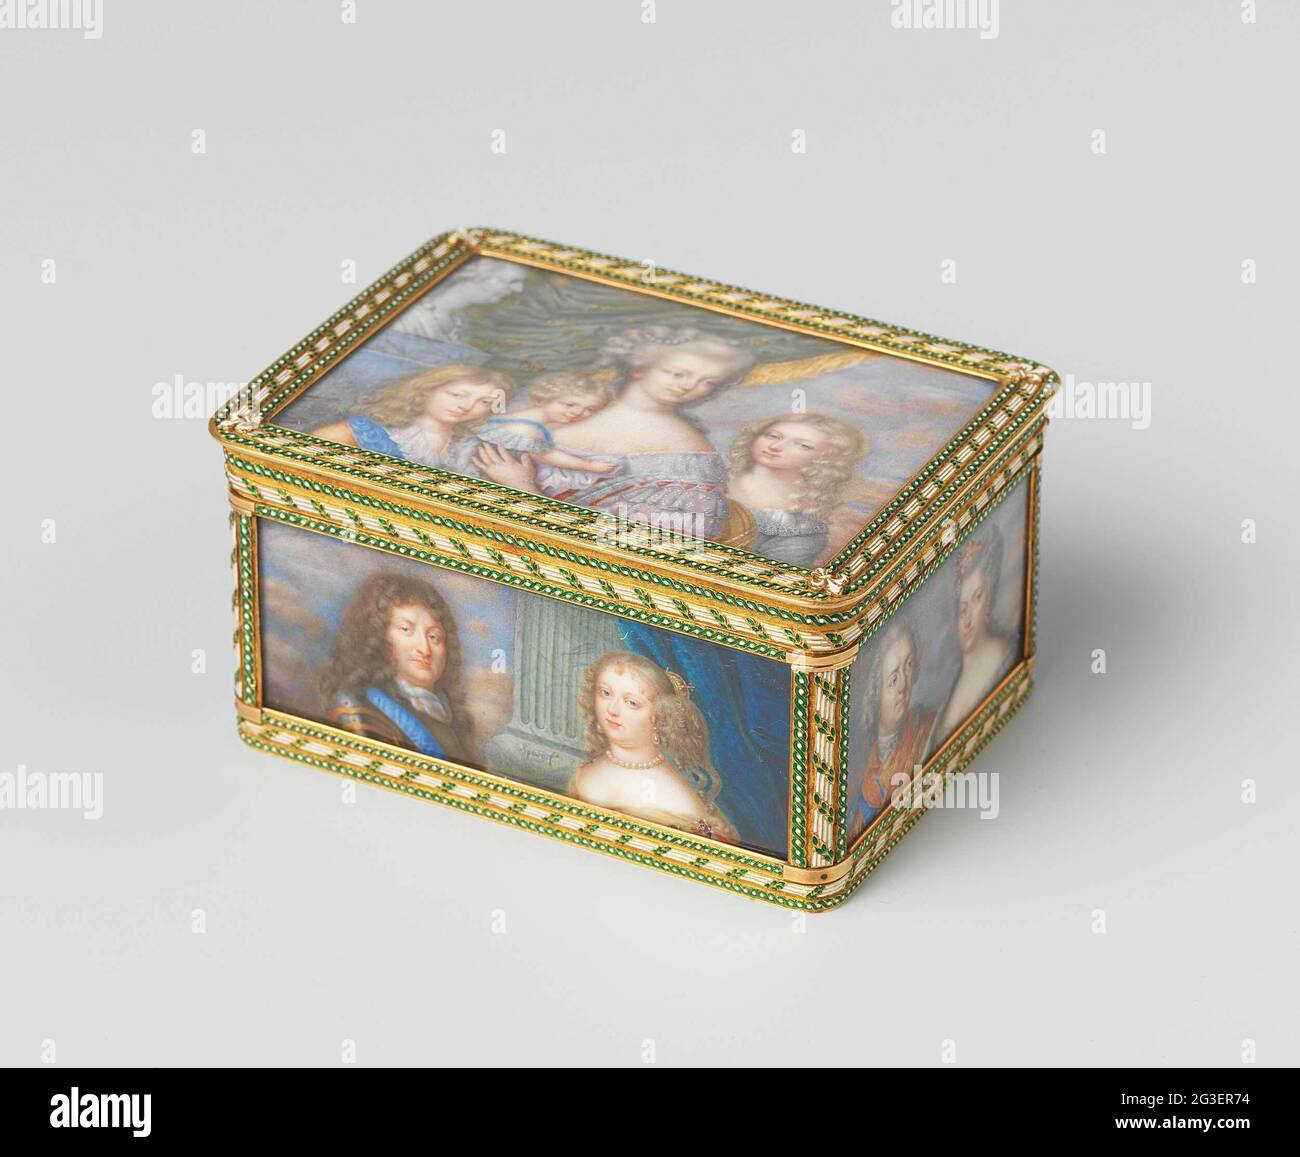 Snuff box of gold, painted with miniature portraits of the bourbons. Rectangular box of gold. All sides are covered with miniature portraits of the bourbons. On the lid Marie-Antoinette with her children next to a bust of Louis XVI. On the bottom the brother and sister of Louis XVI. On the front Louis XIV and Maria-Theresa of Spain. On the back Hendrik IV and Maria de Medici. On the left side Louis XIII and Anna van Austria. On the right side Louis XV and Maria Leczinska. Stock Photo